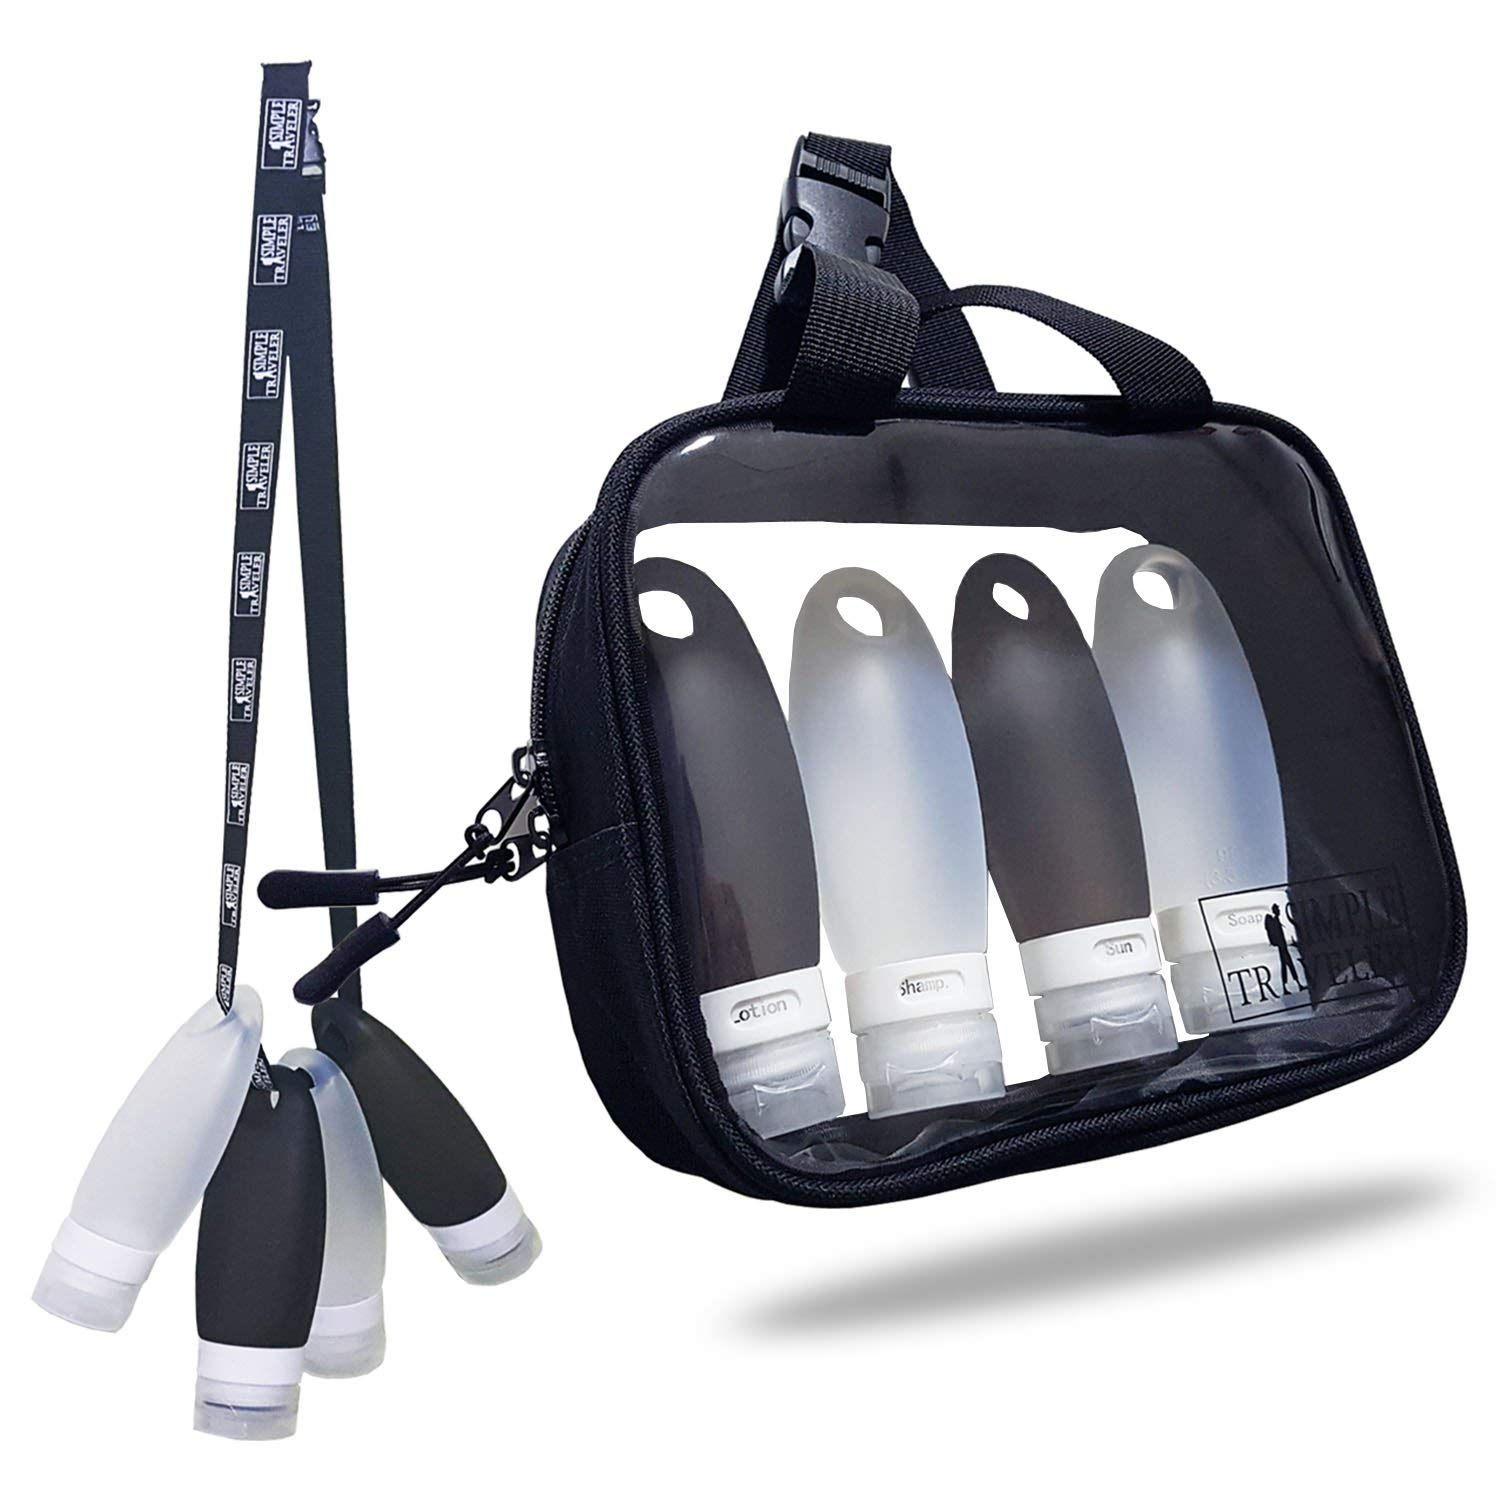 Silicone Travel Bottles Set with TSA approved Toiletry Bag by SimpleTravelerの画像